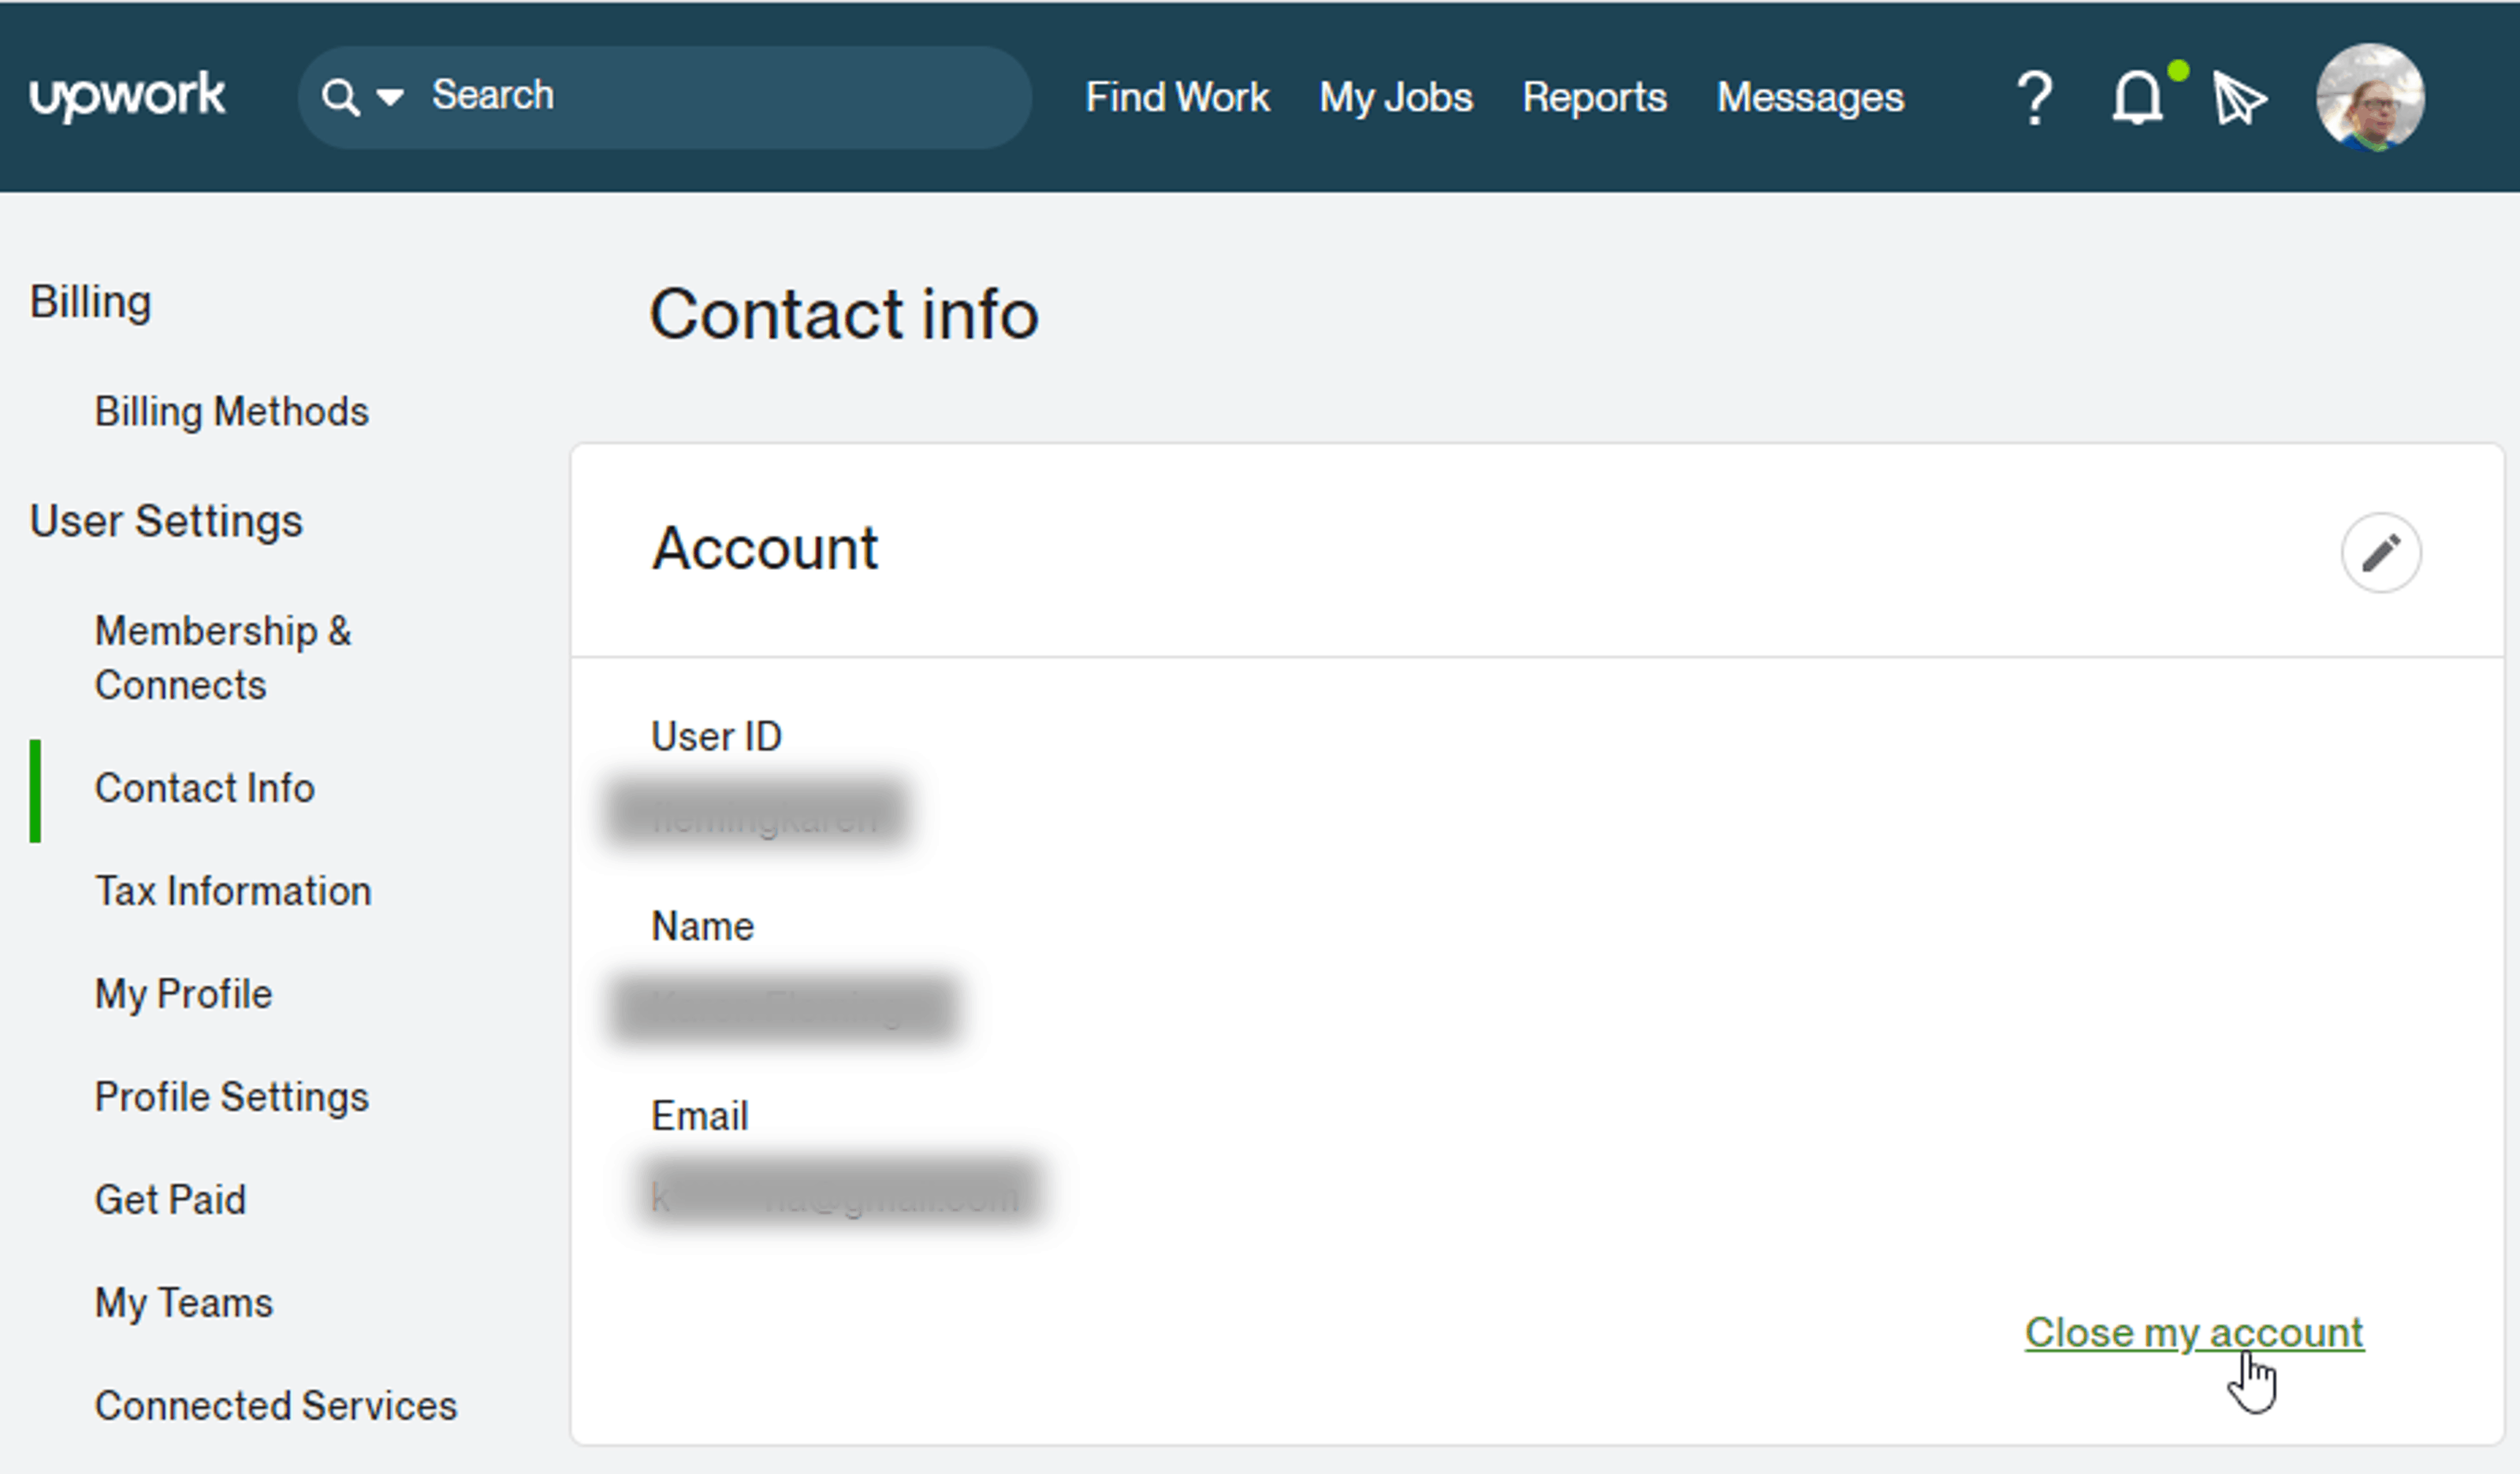 Step 1 to delete your Upwork account